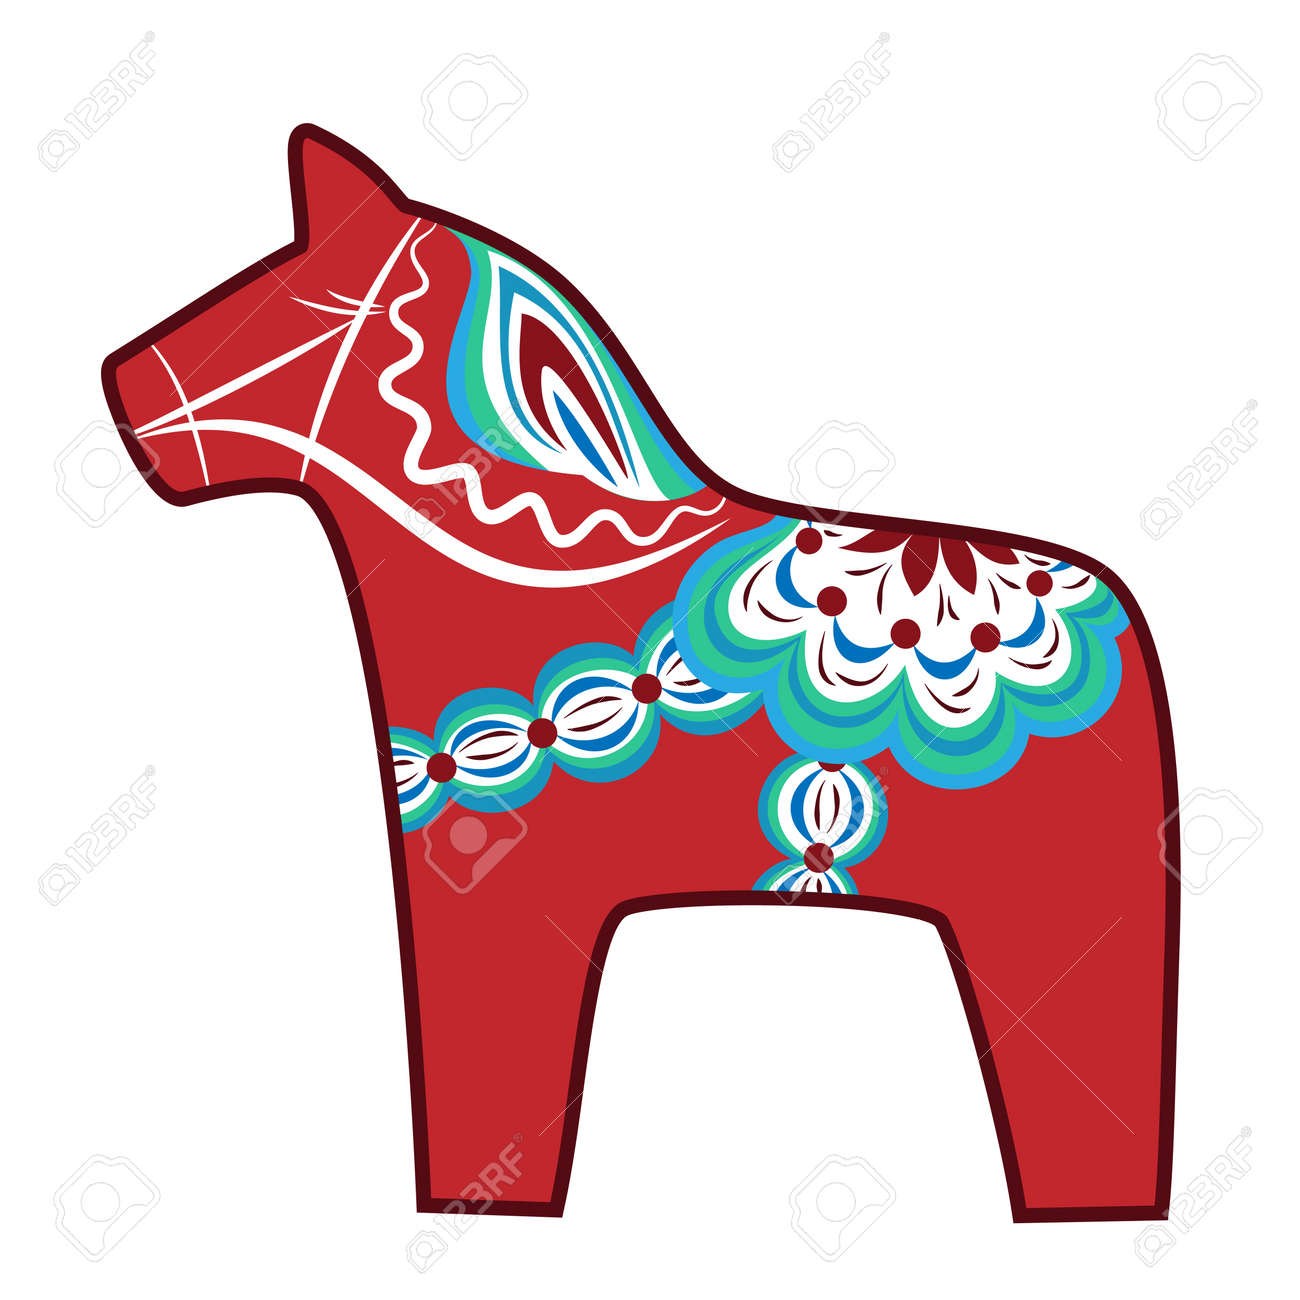 Red Wooden Horse National Symbol Of Sweden Royalty Free Cliparts